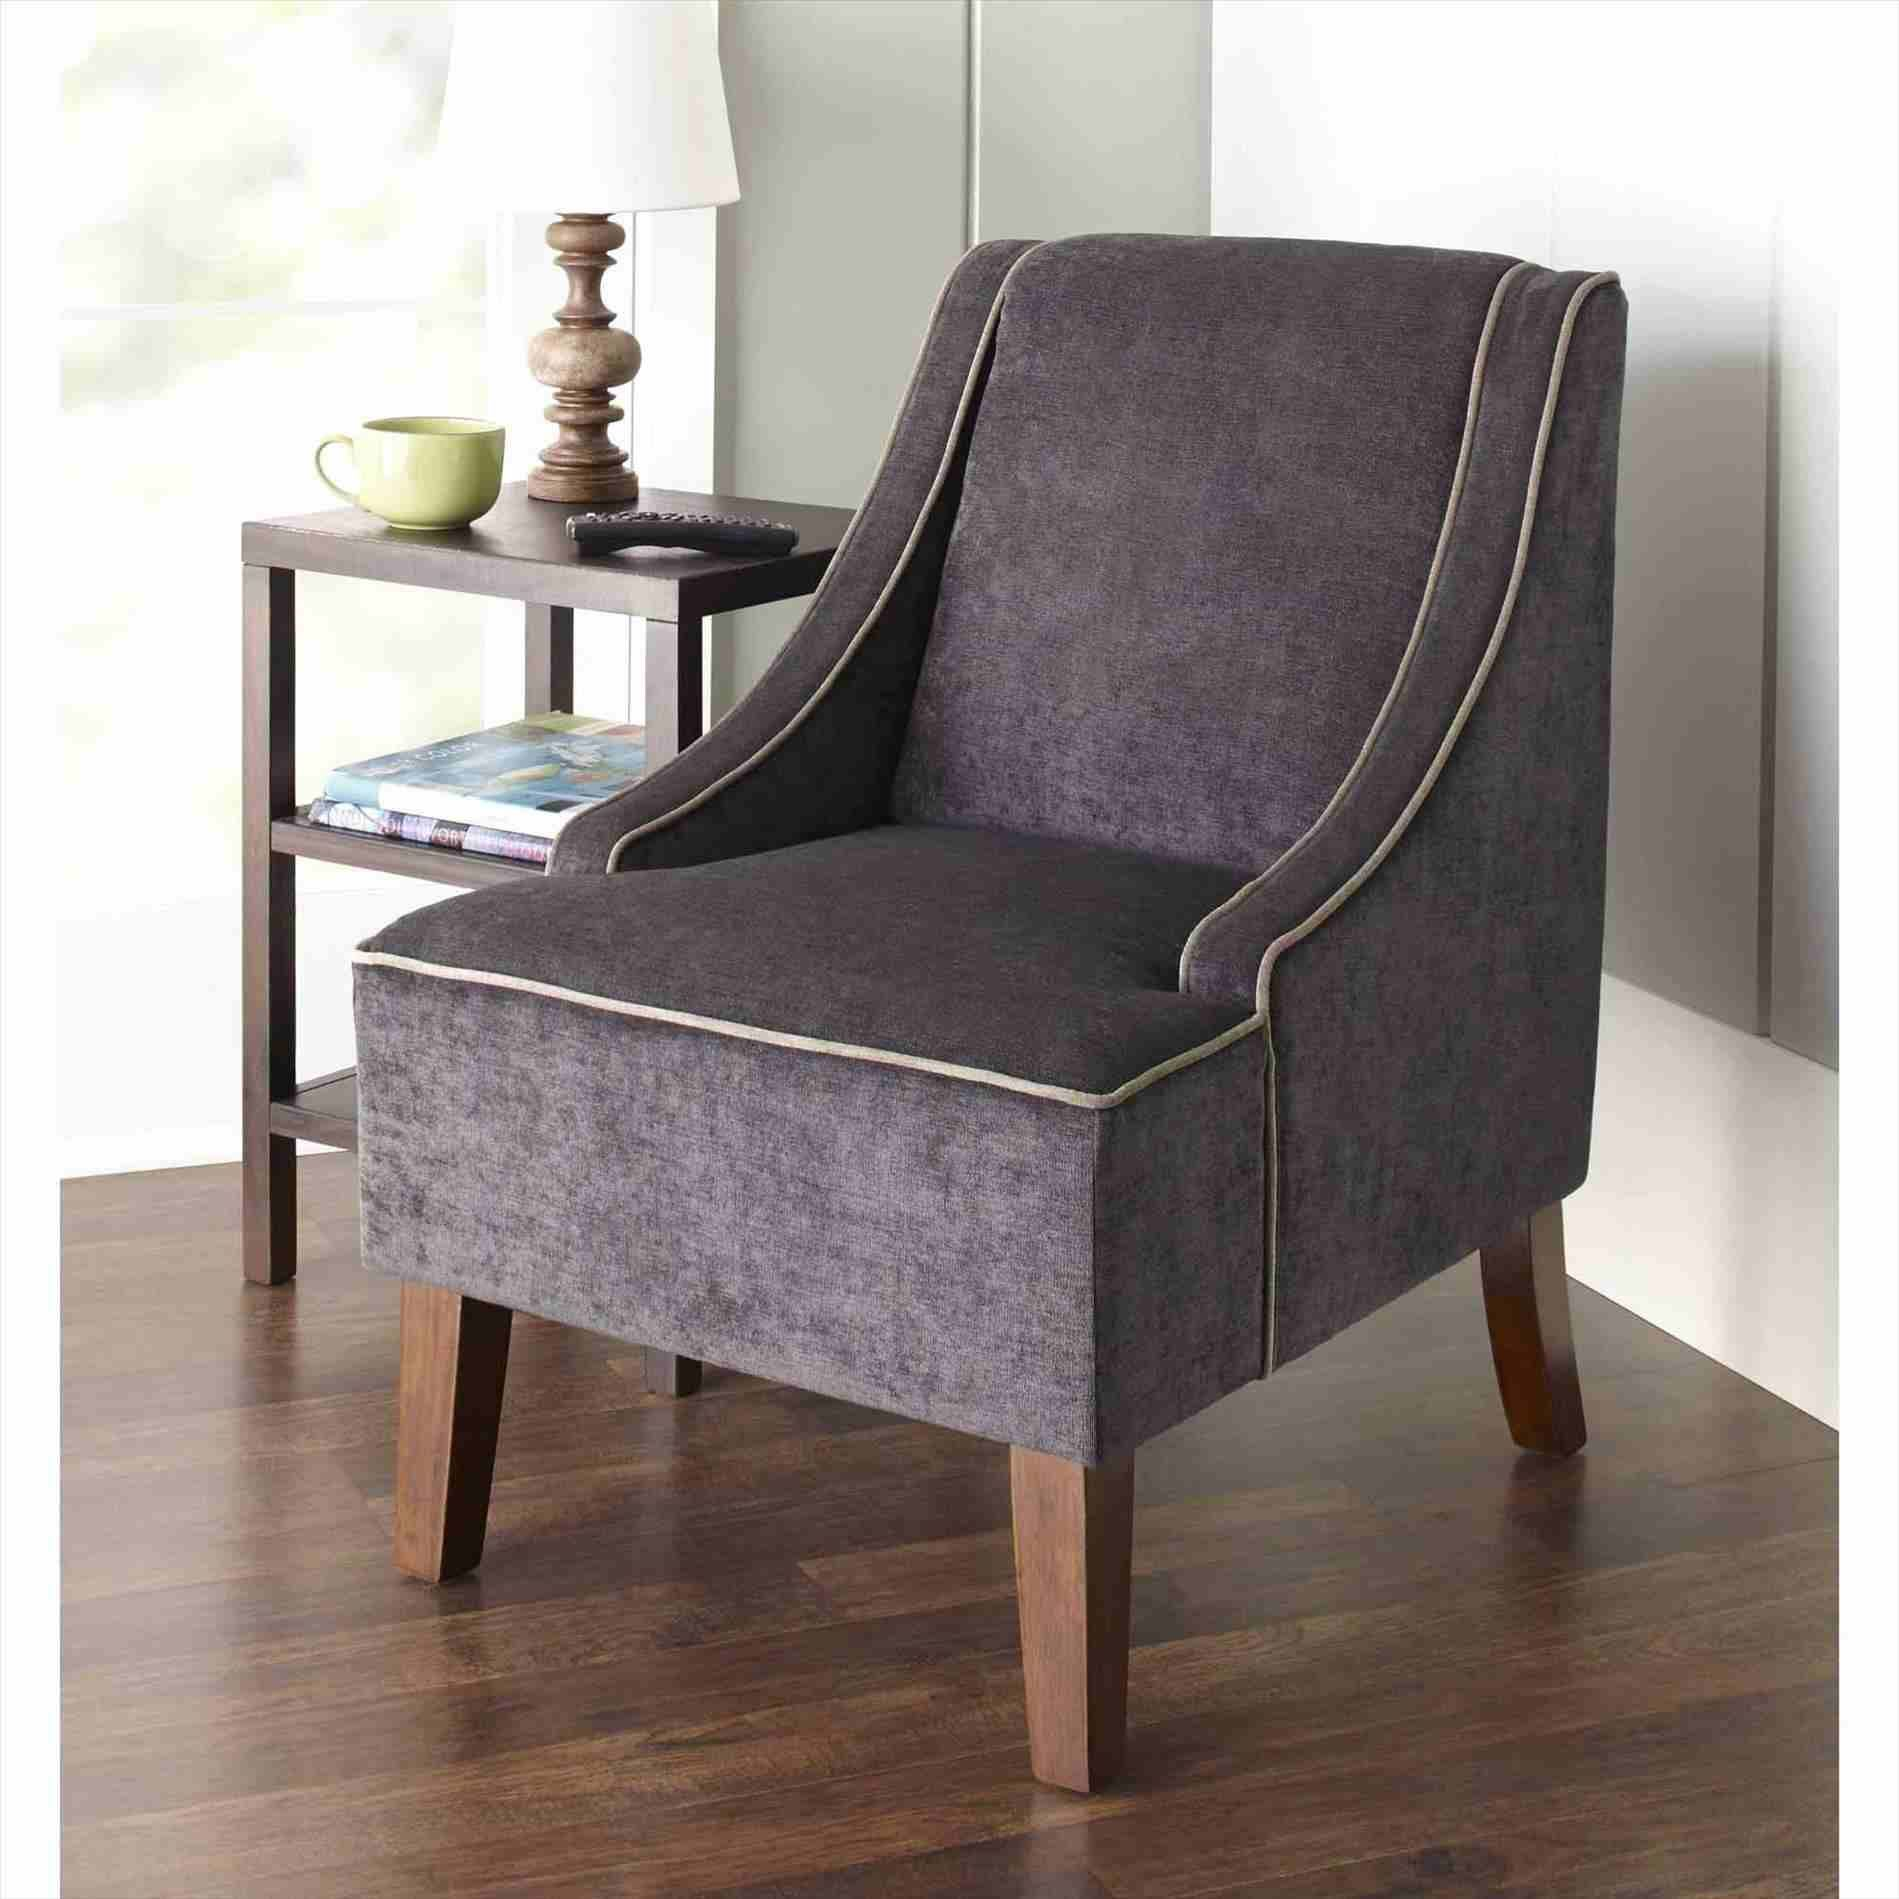 Bedroom Chair Walmart Mid Century Modern Lounge Chairs Tufted